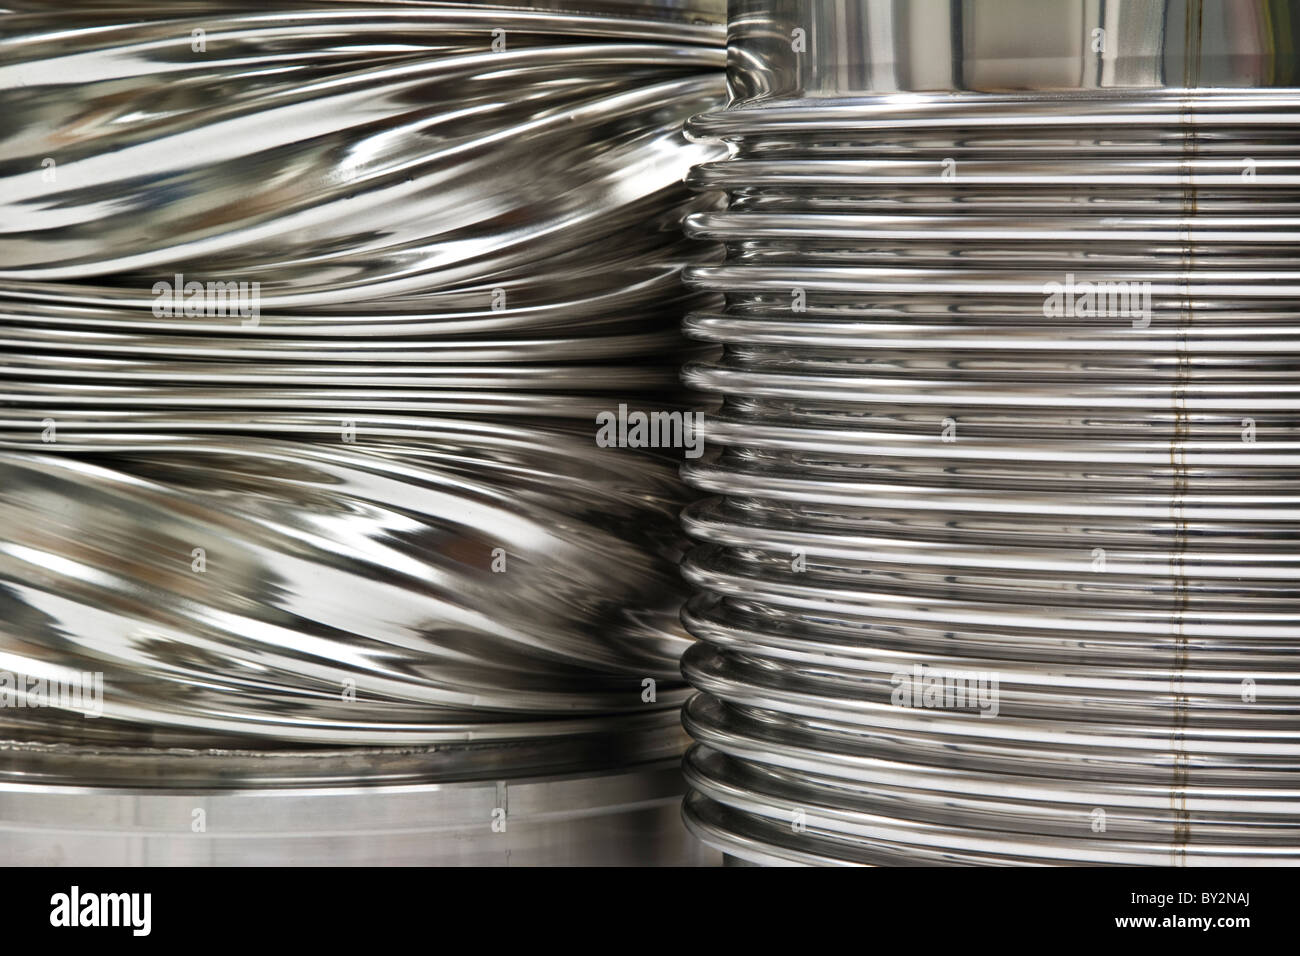 Comparison between a newly formed stainless steel bellows and one deformed in a test situation - Stock Image